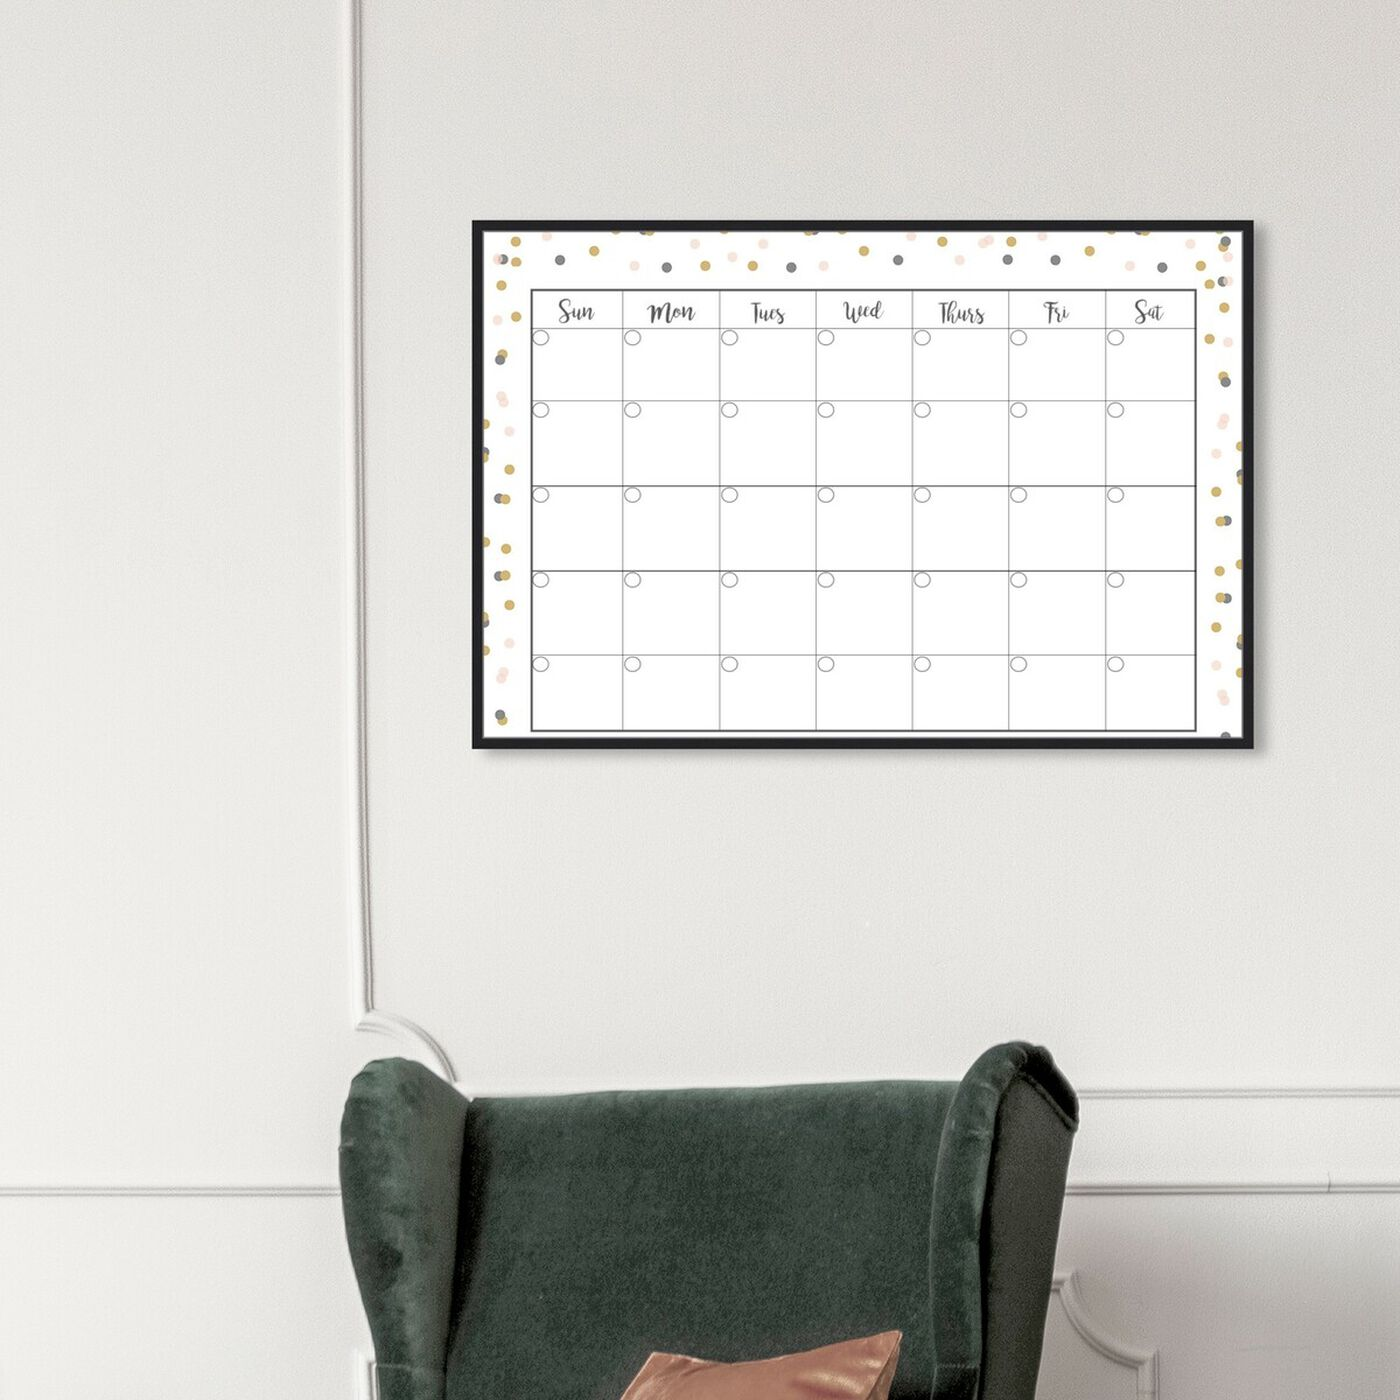 Hanging view of Confetti Calender featuring education and office and educational charts art.